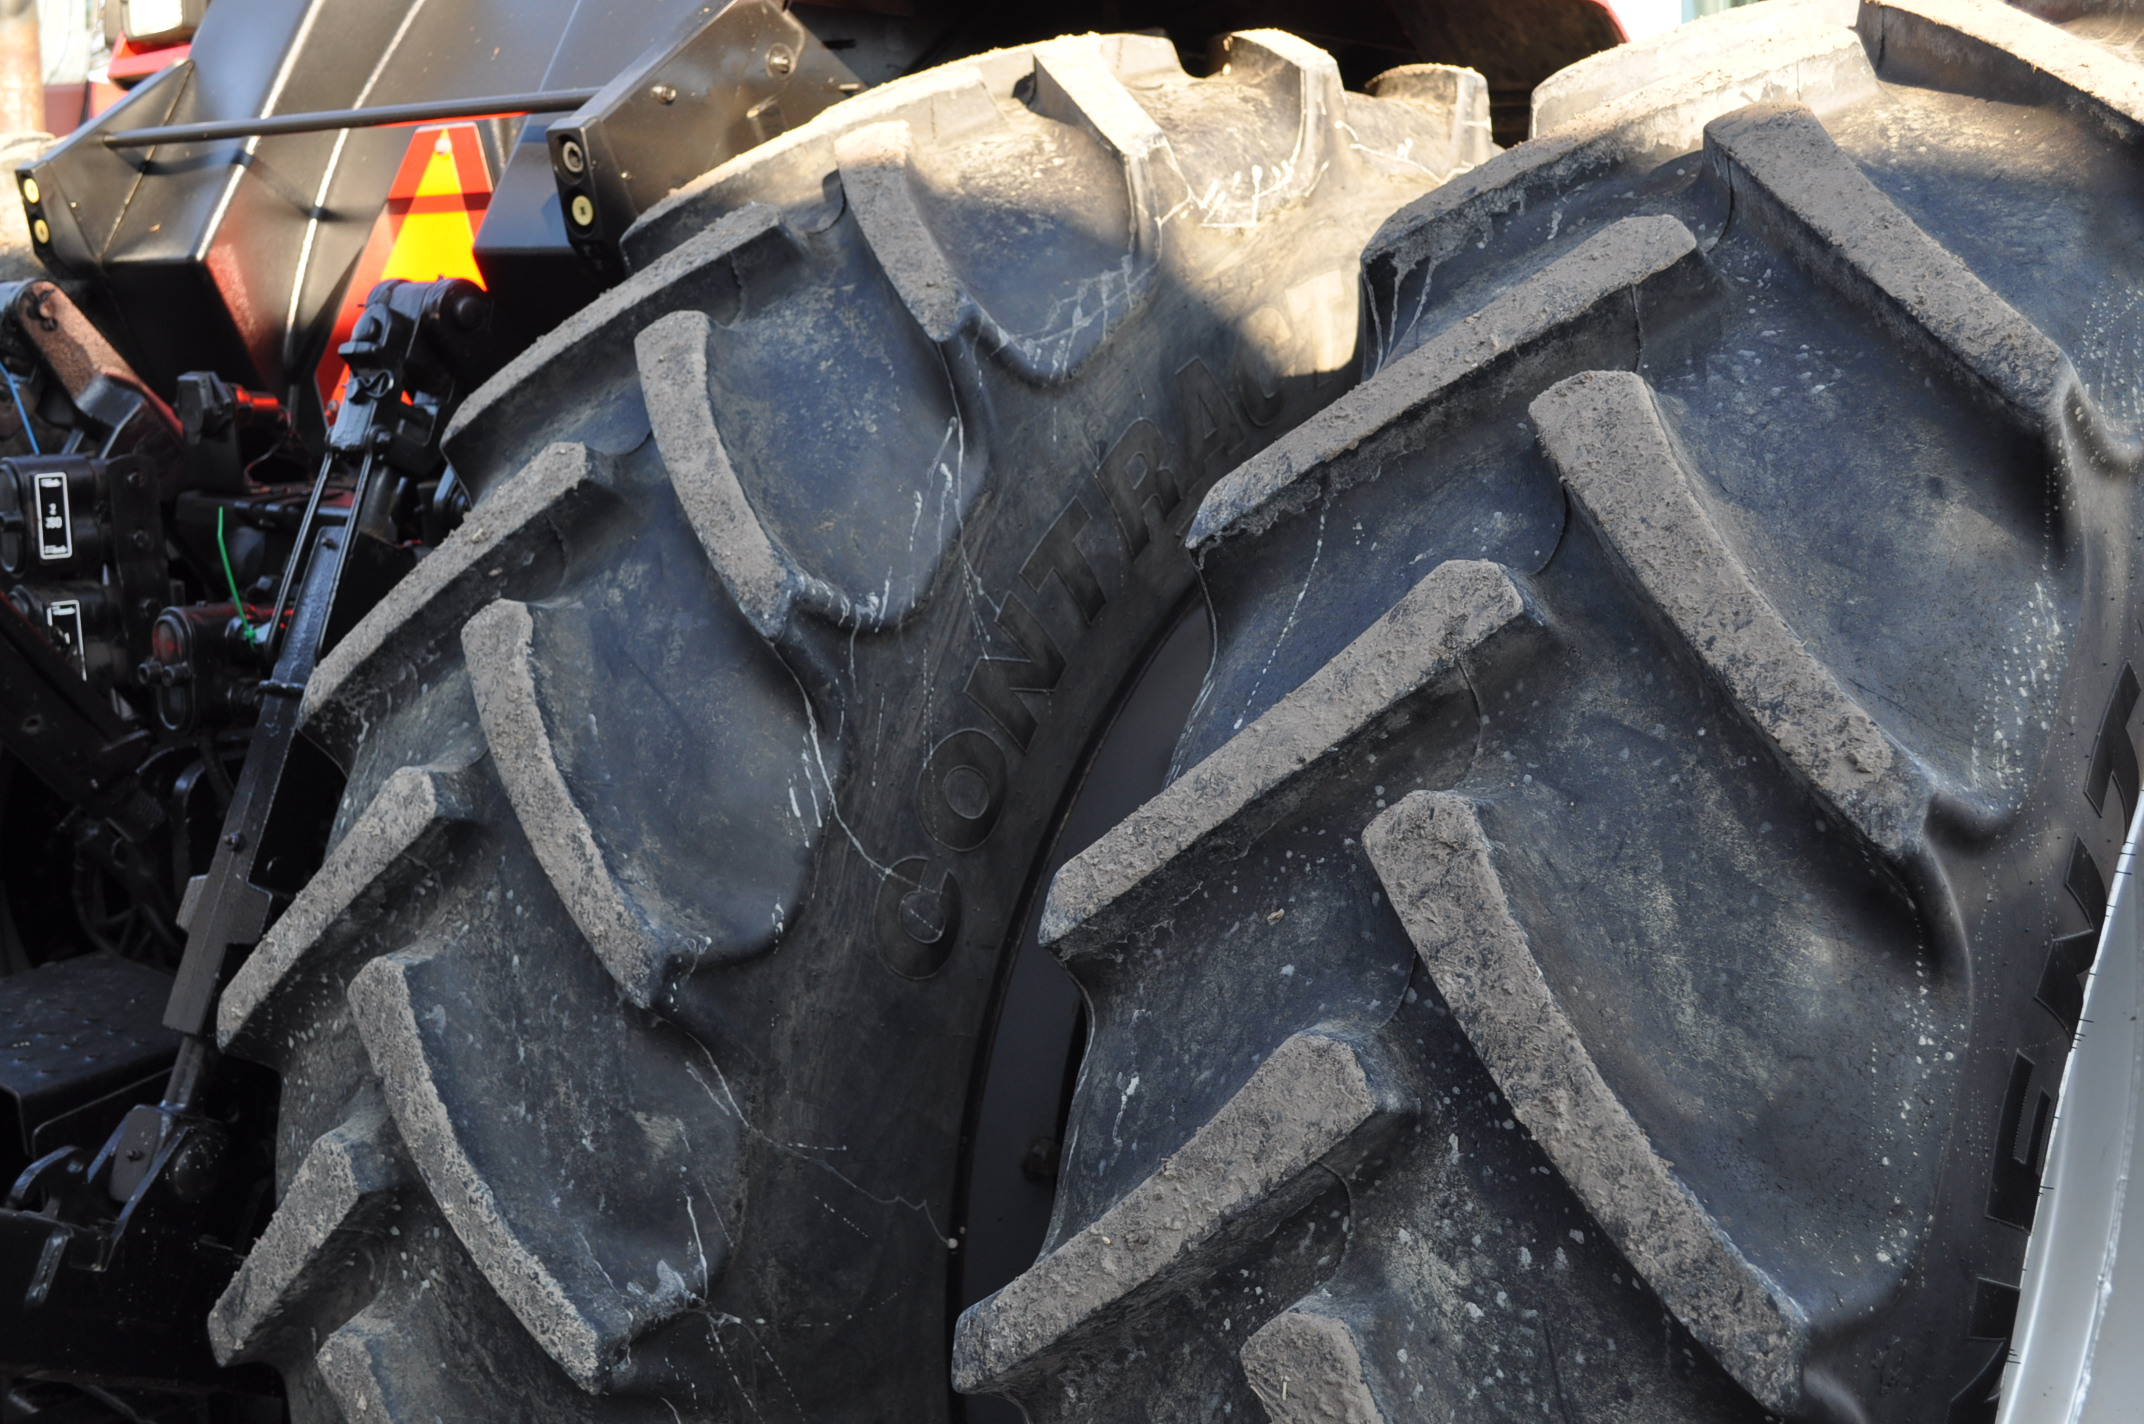 Case IH 7240 MFWD tractor, 460/85R46 rear duals, 420/85R30 front, 18 spd powershift, 4 reverse, - Image 5 of 20